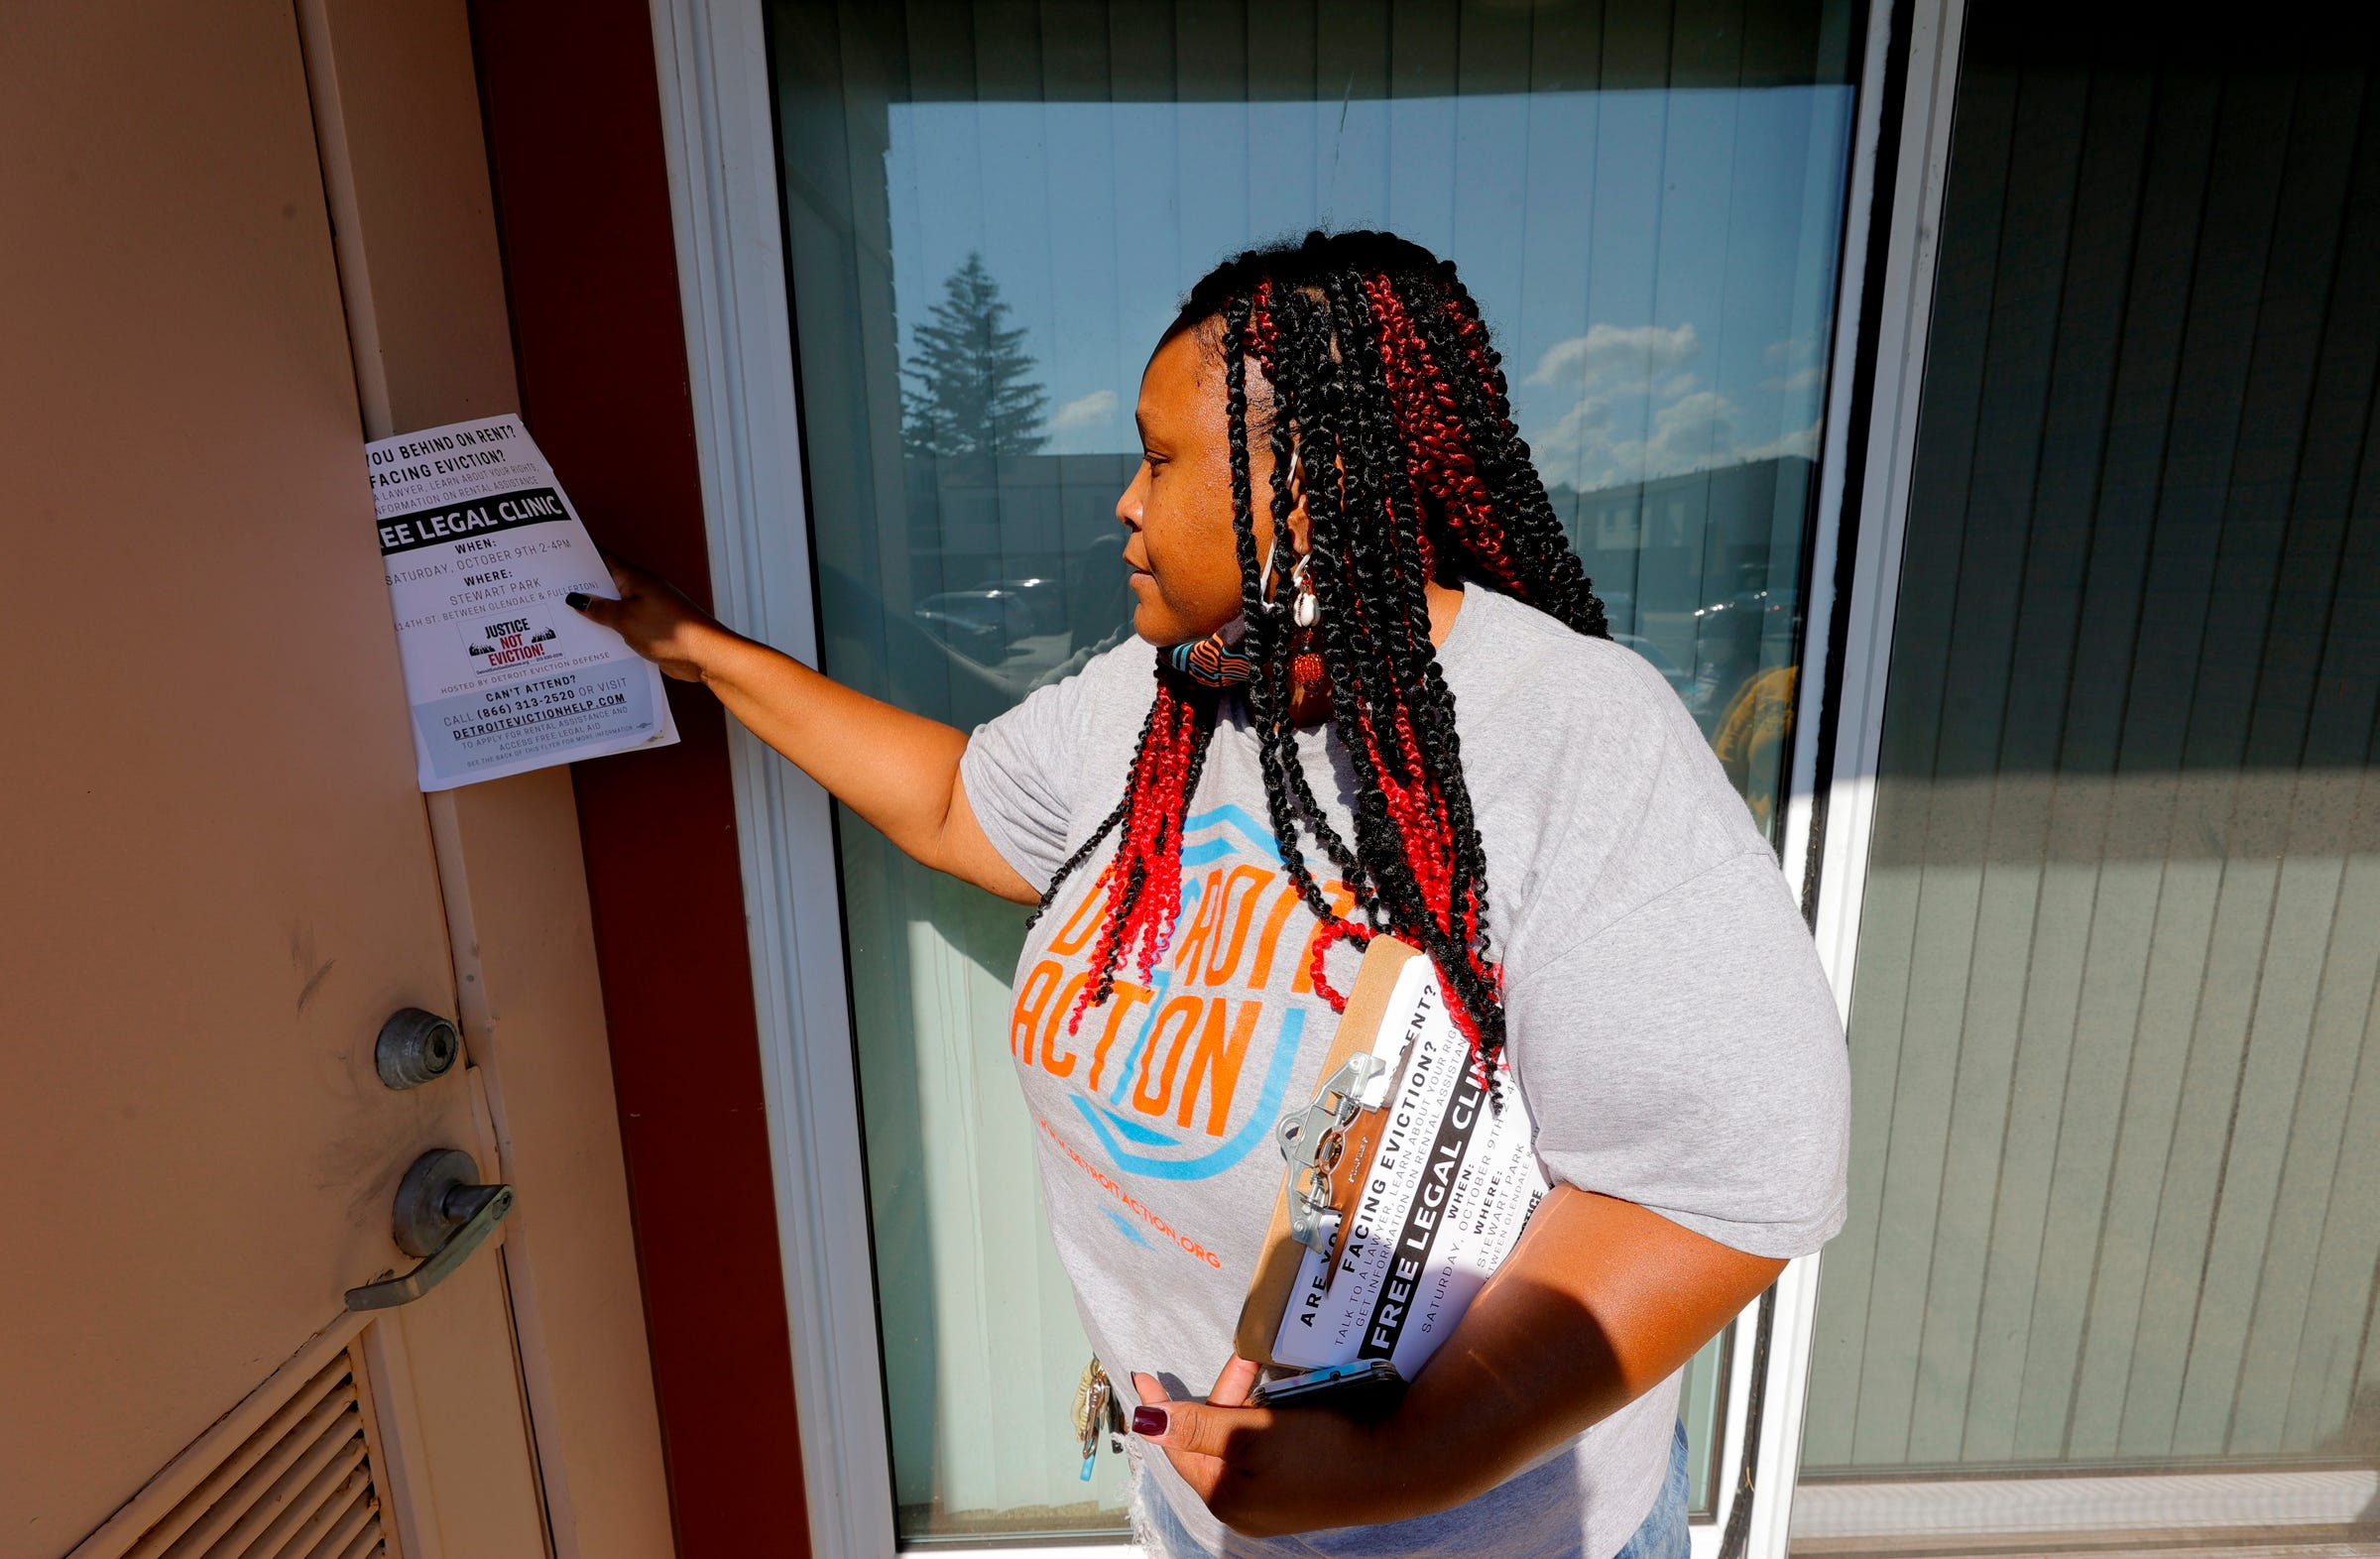 They're trying to save Detroiters from eviction before it's too late